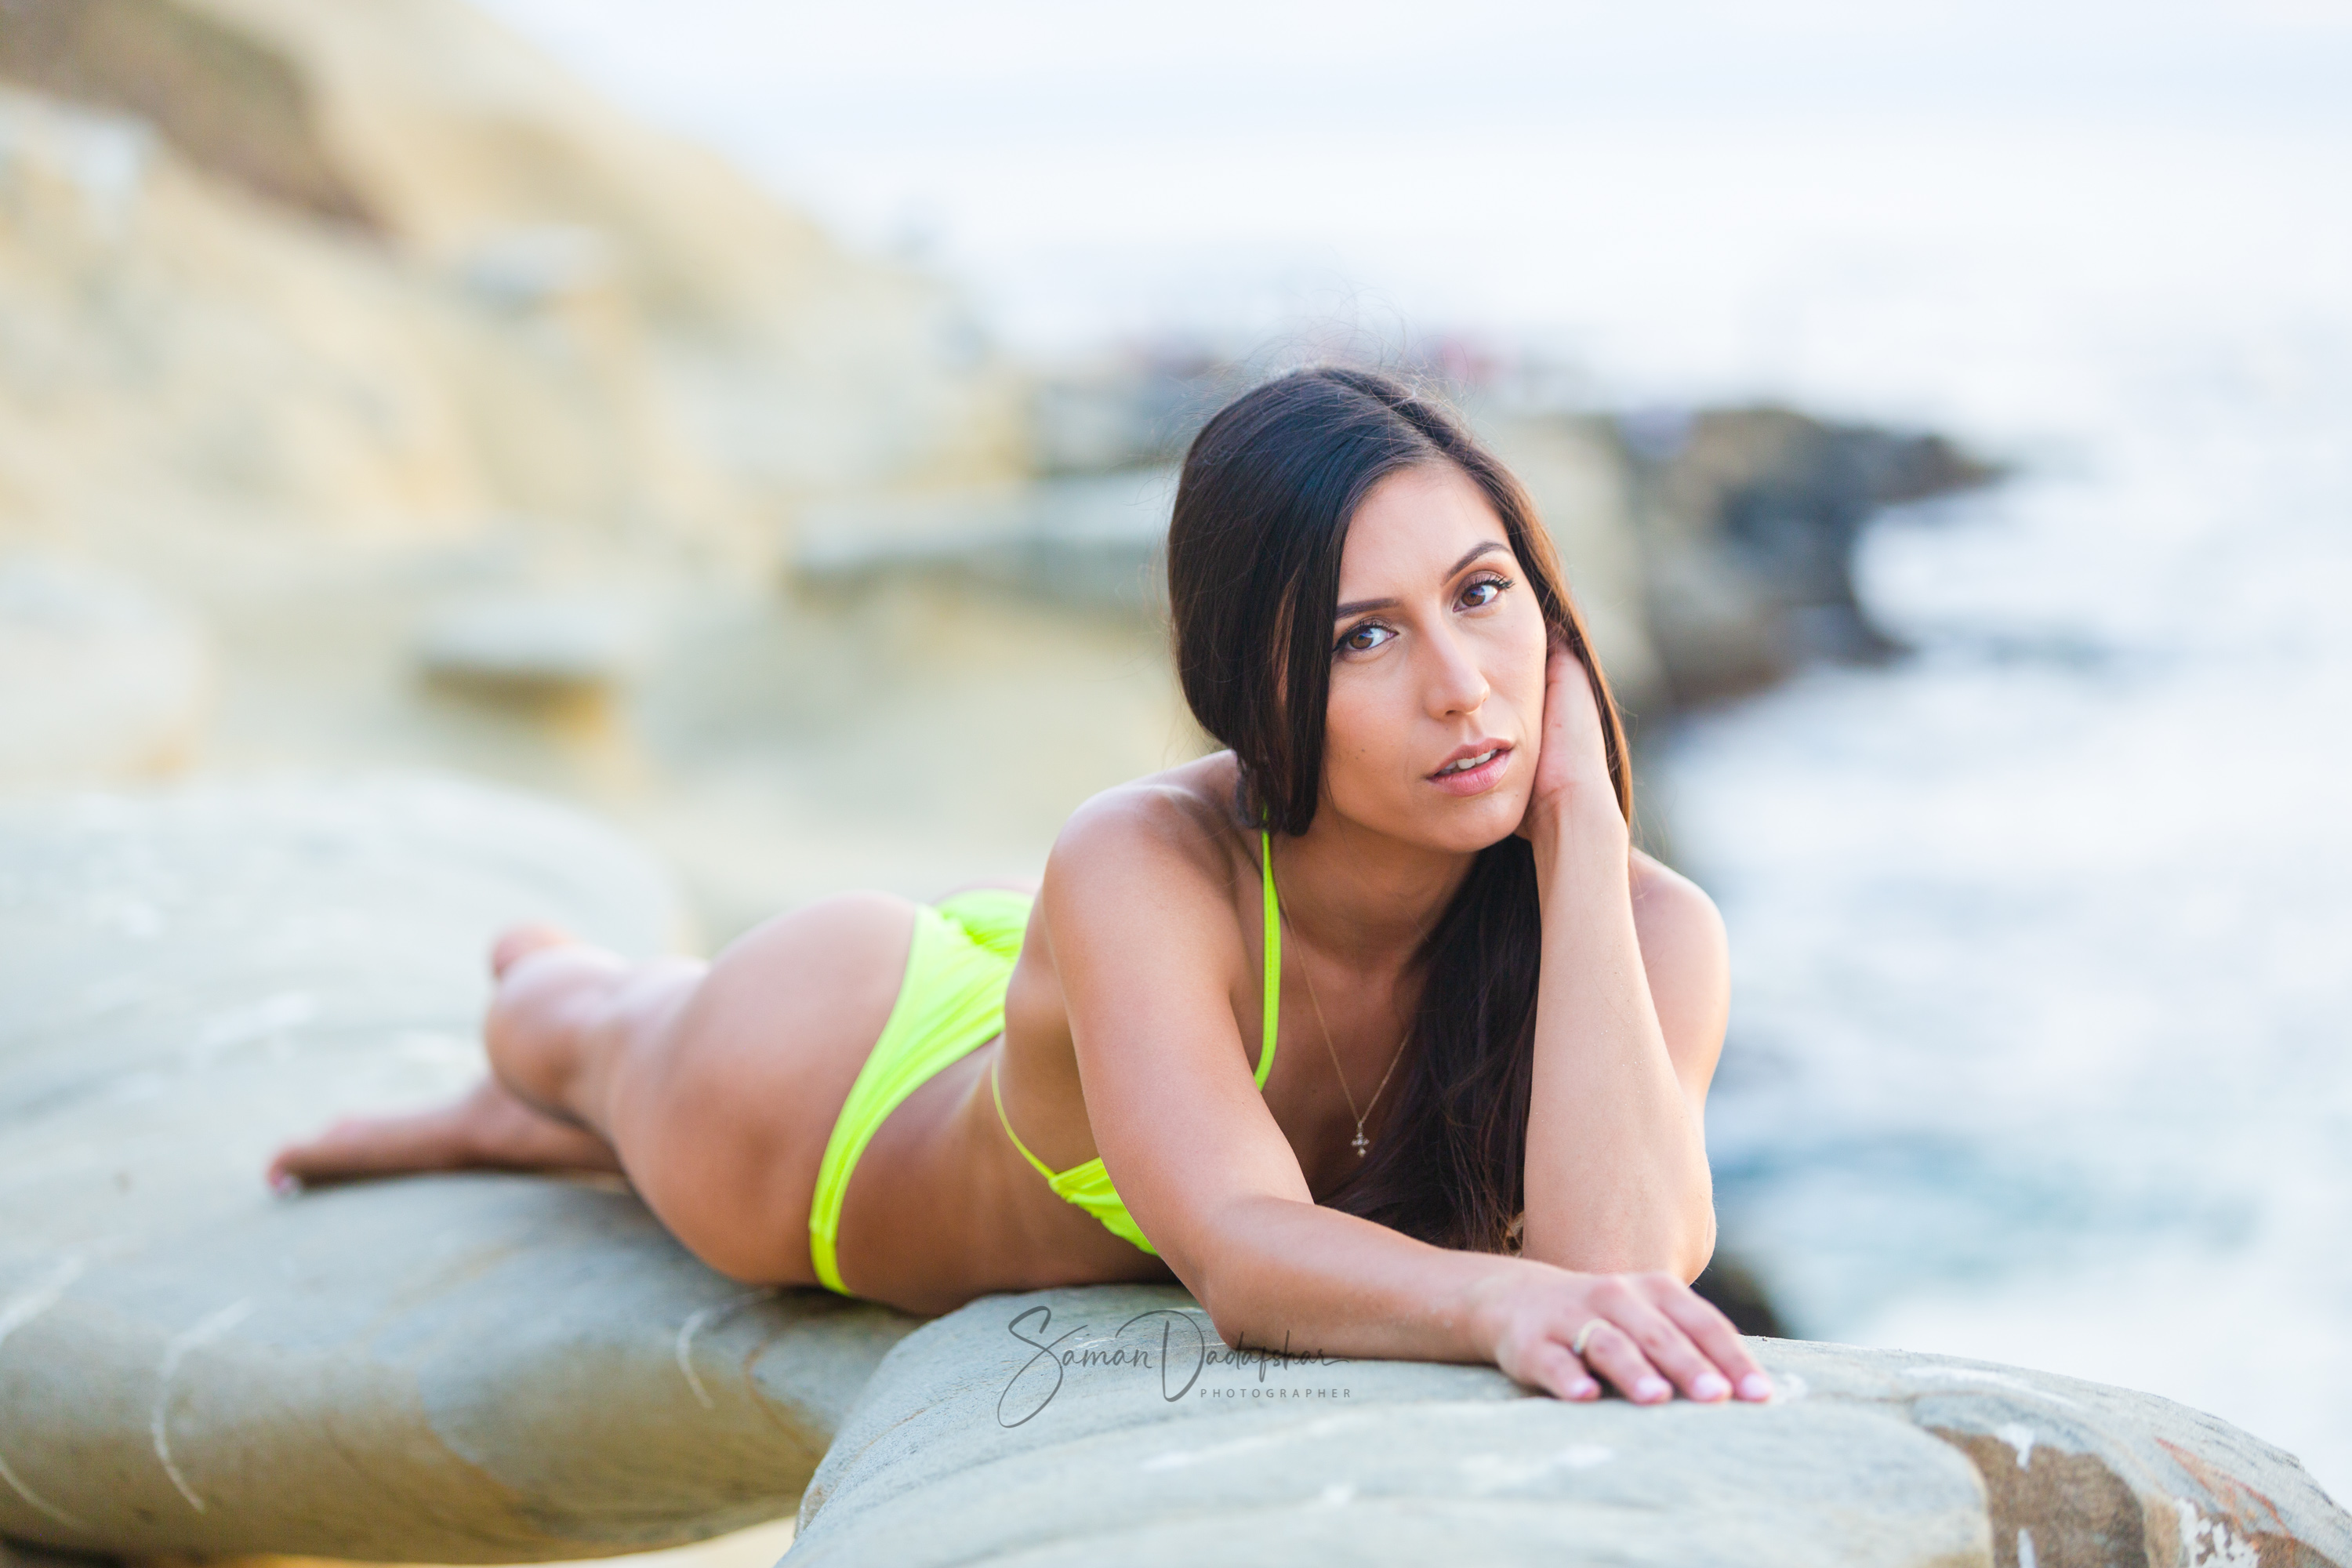 bikini model portrait on the beach